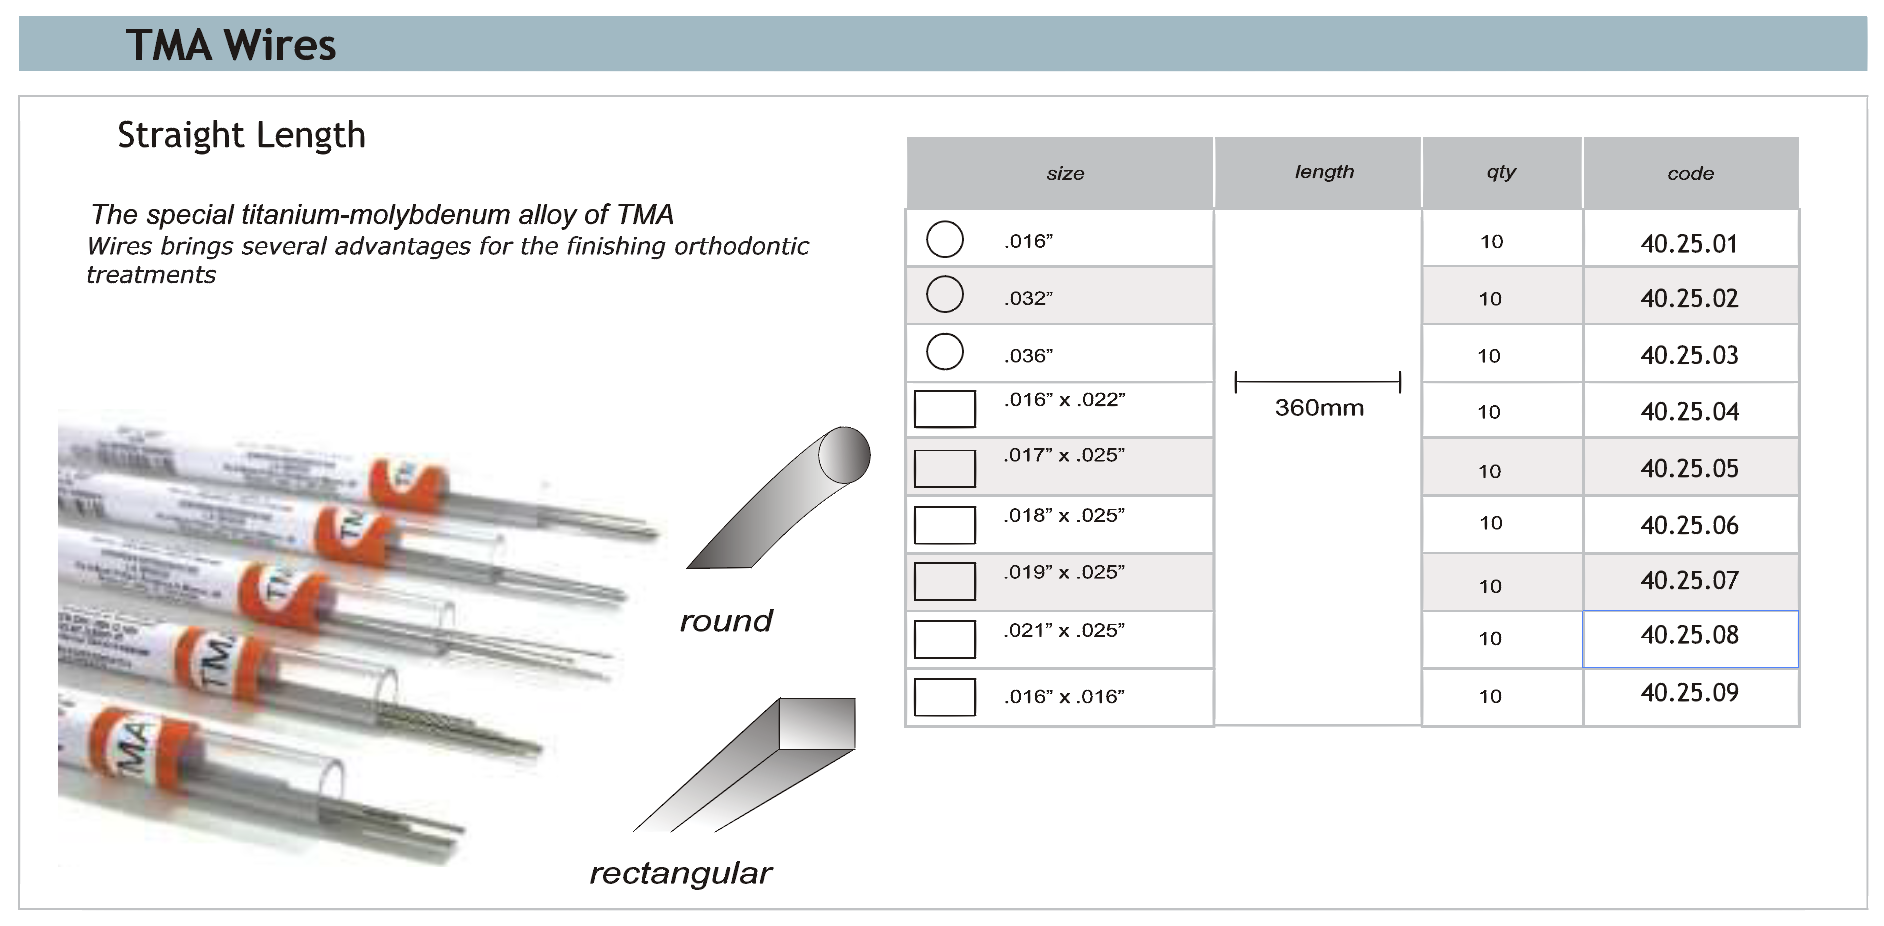 TMA Wires